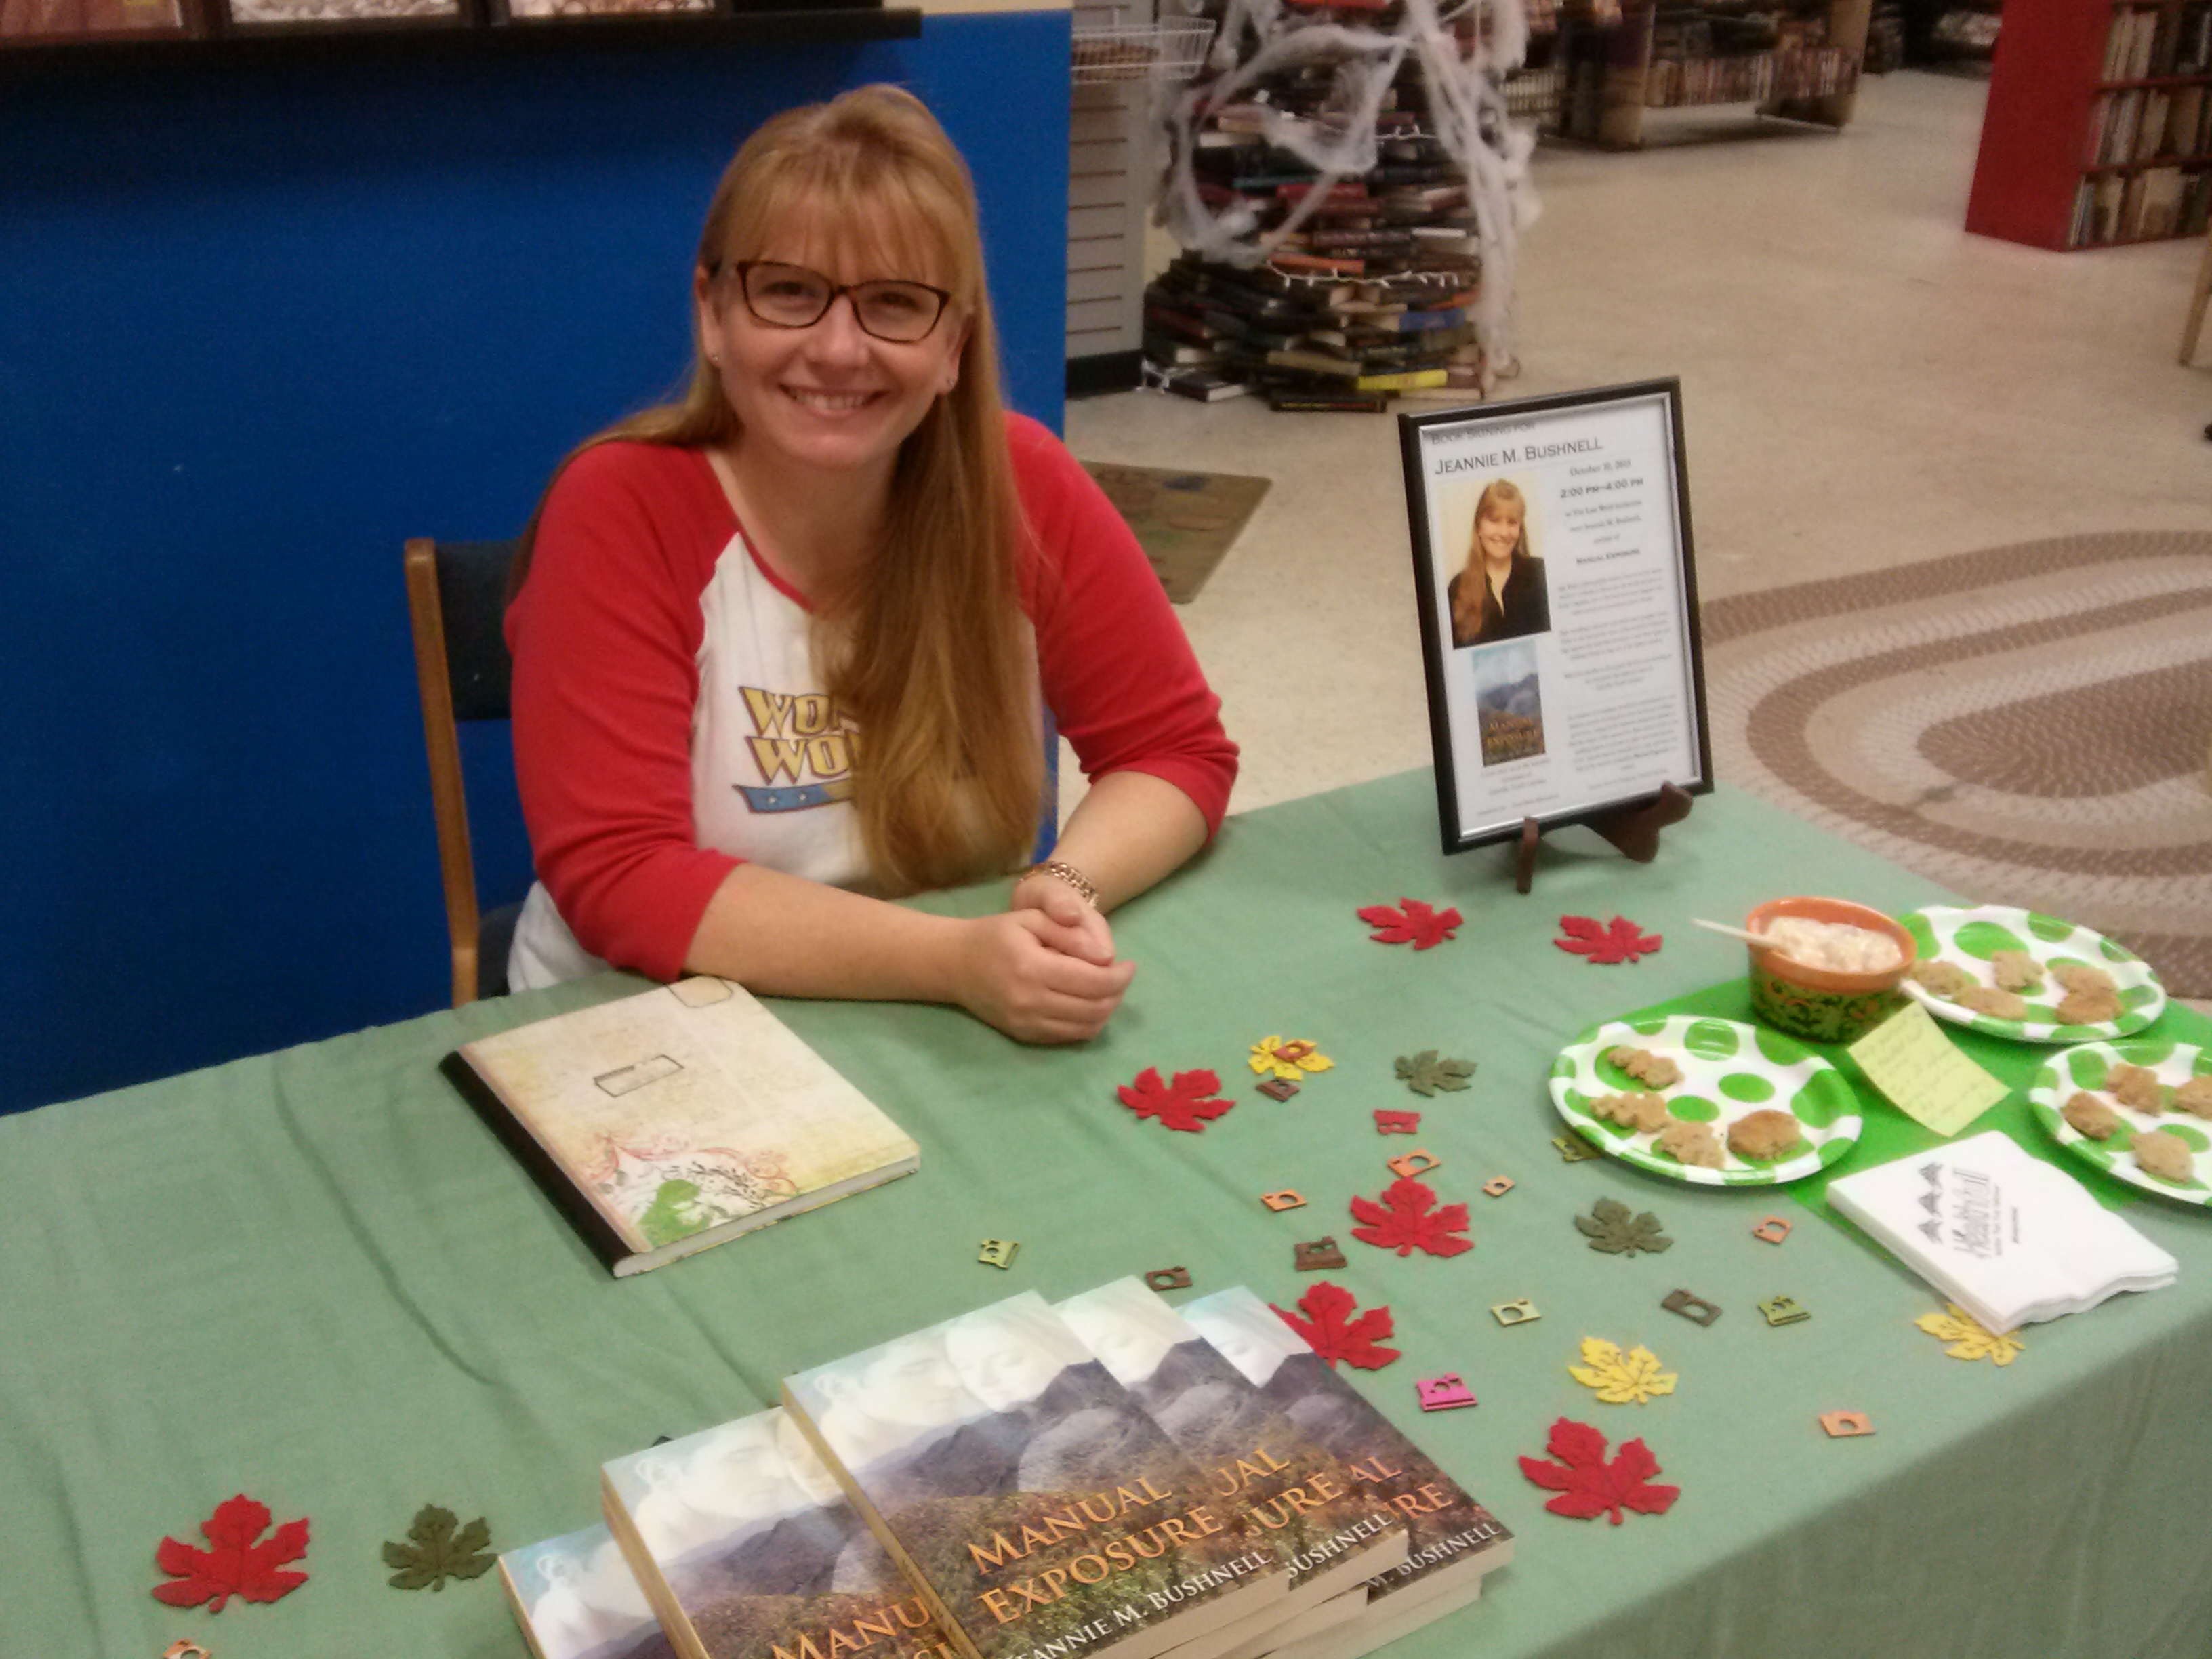 jeannie m bushnell book signing